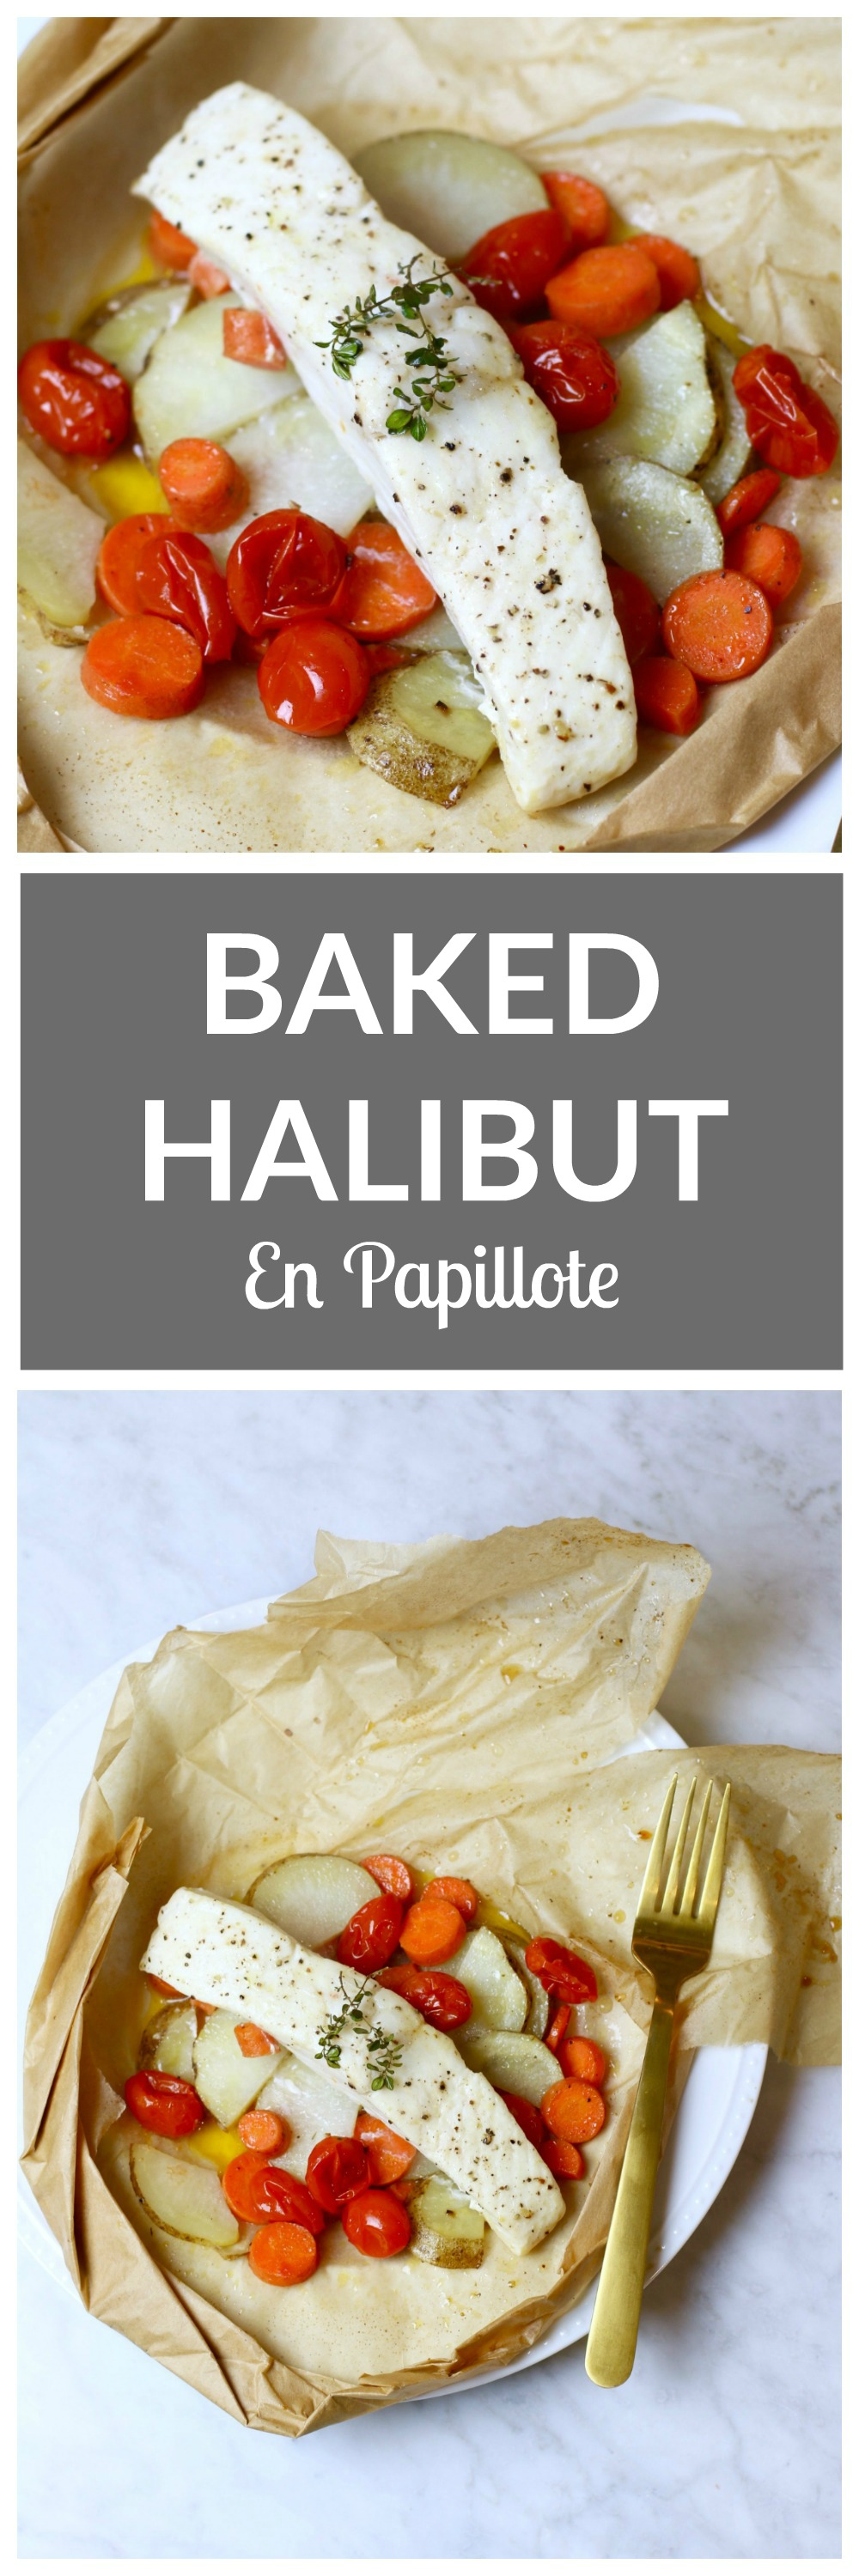 Halibut en Papillote - an easy, delicious and healthy way to cook fish!